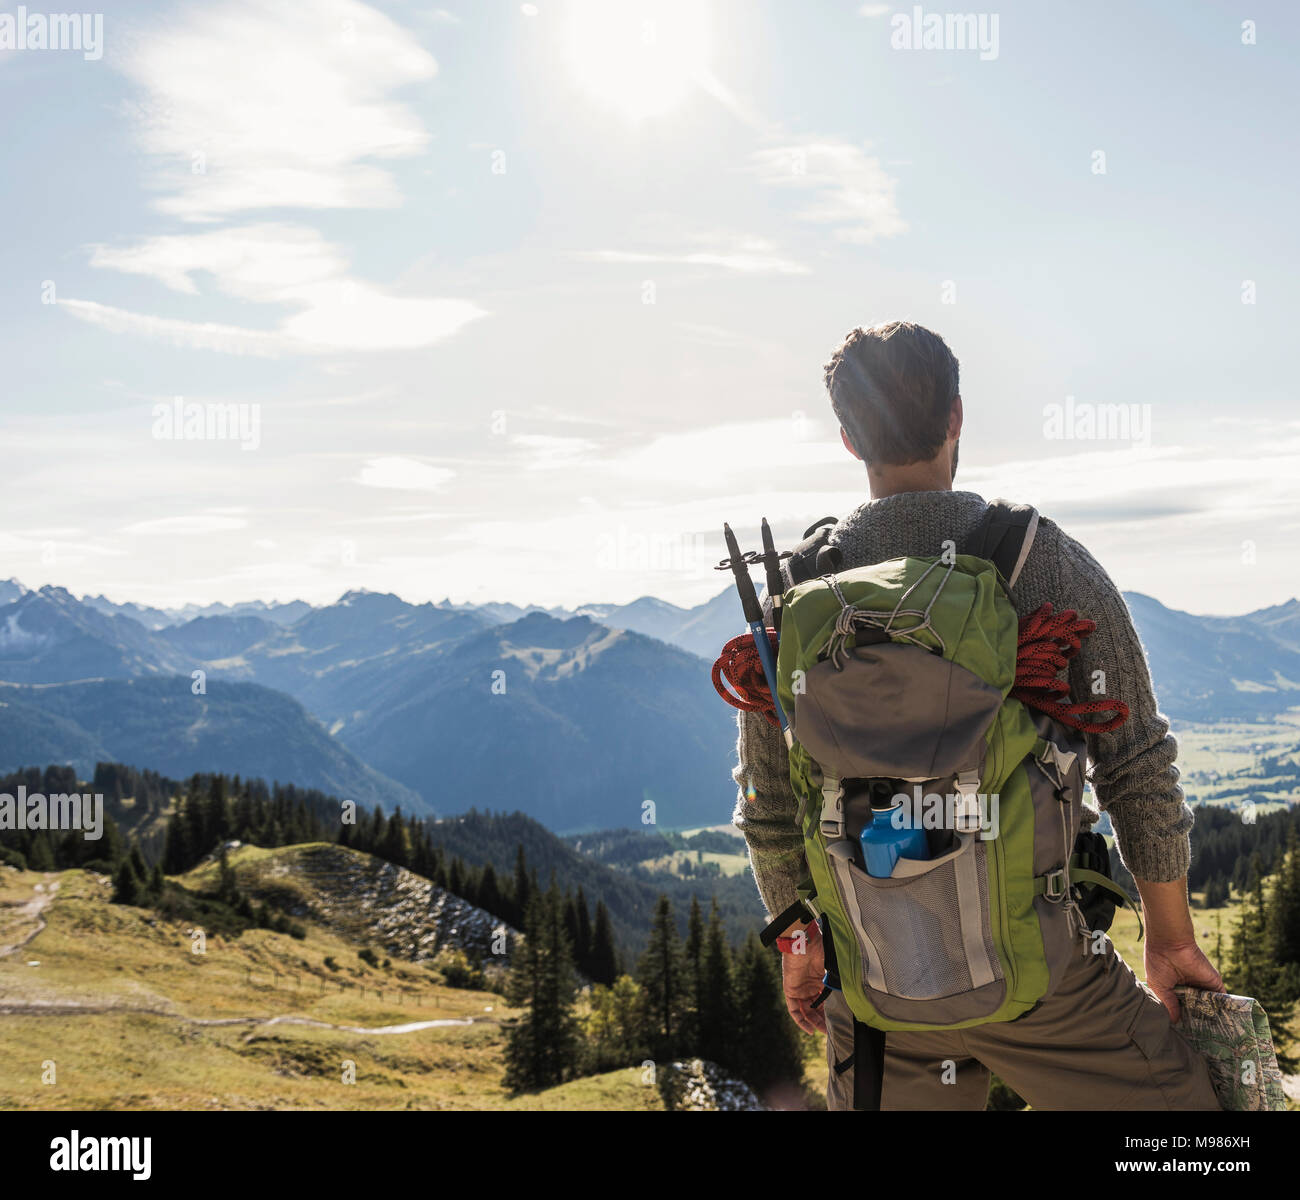 Austria, Tyrol, young man in mountainscape looking at view - Stock Image